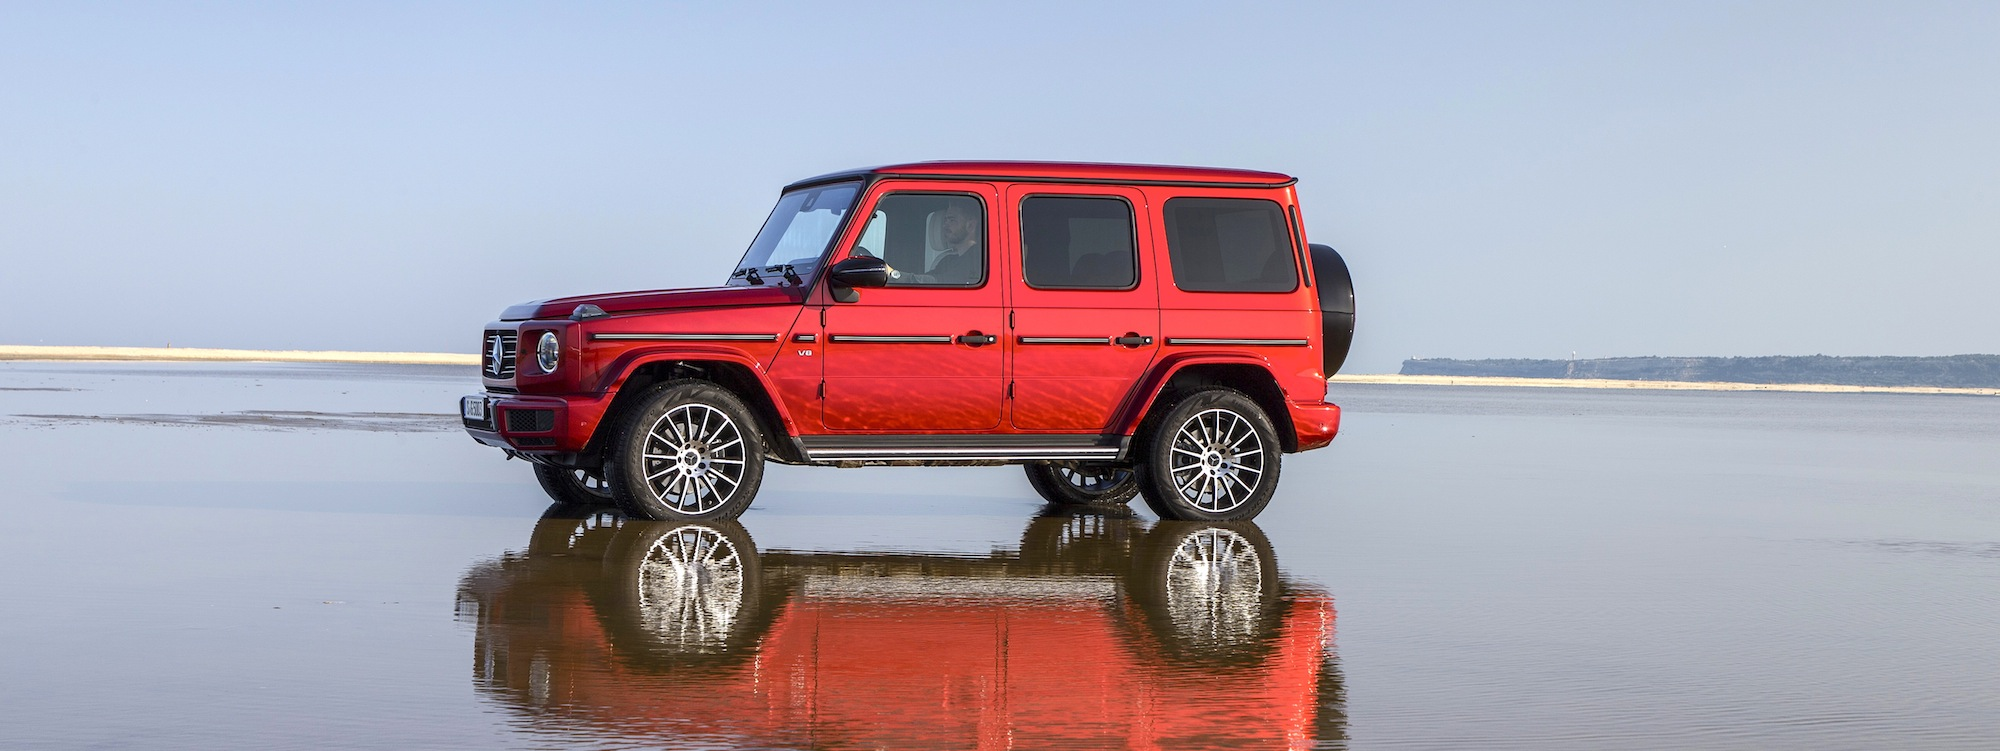 2019 Mercedes-Benz G-Class: From Military Vehicle To Celebrity Ride